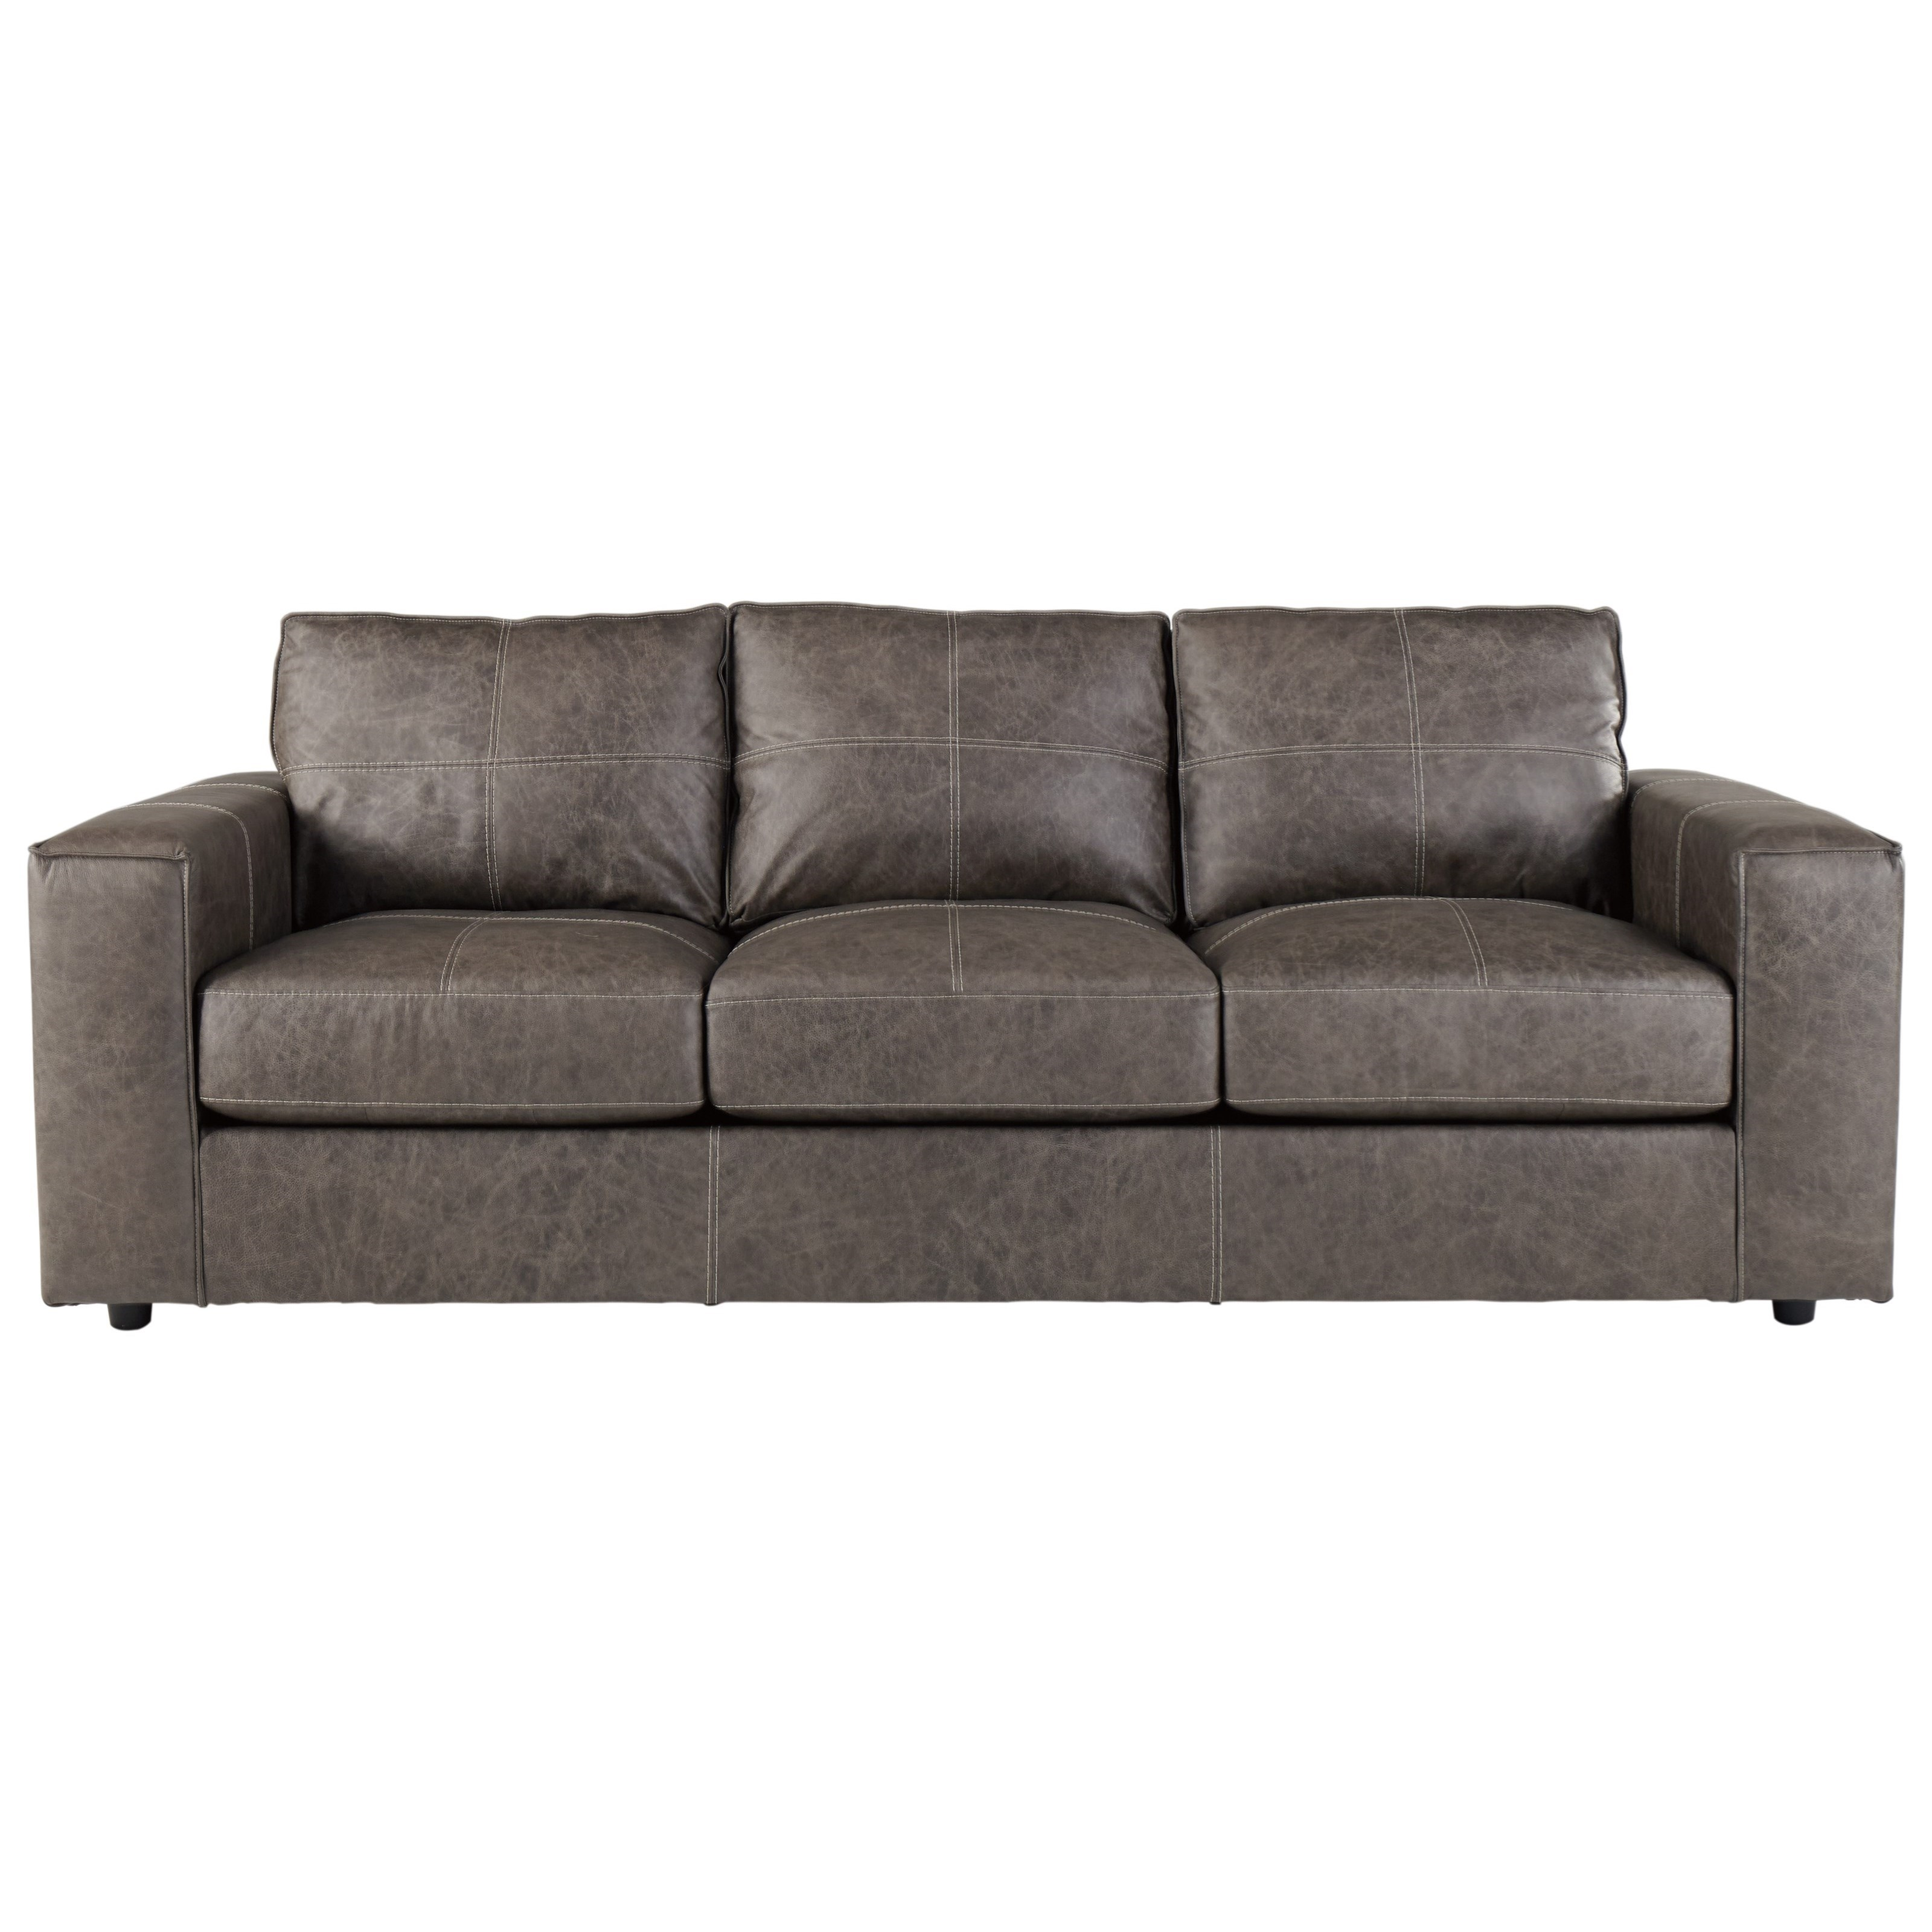 Signature Furniture By Ashley: Signature Design By Ashley Trembolt Contemporary Sofa